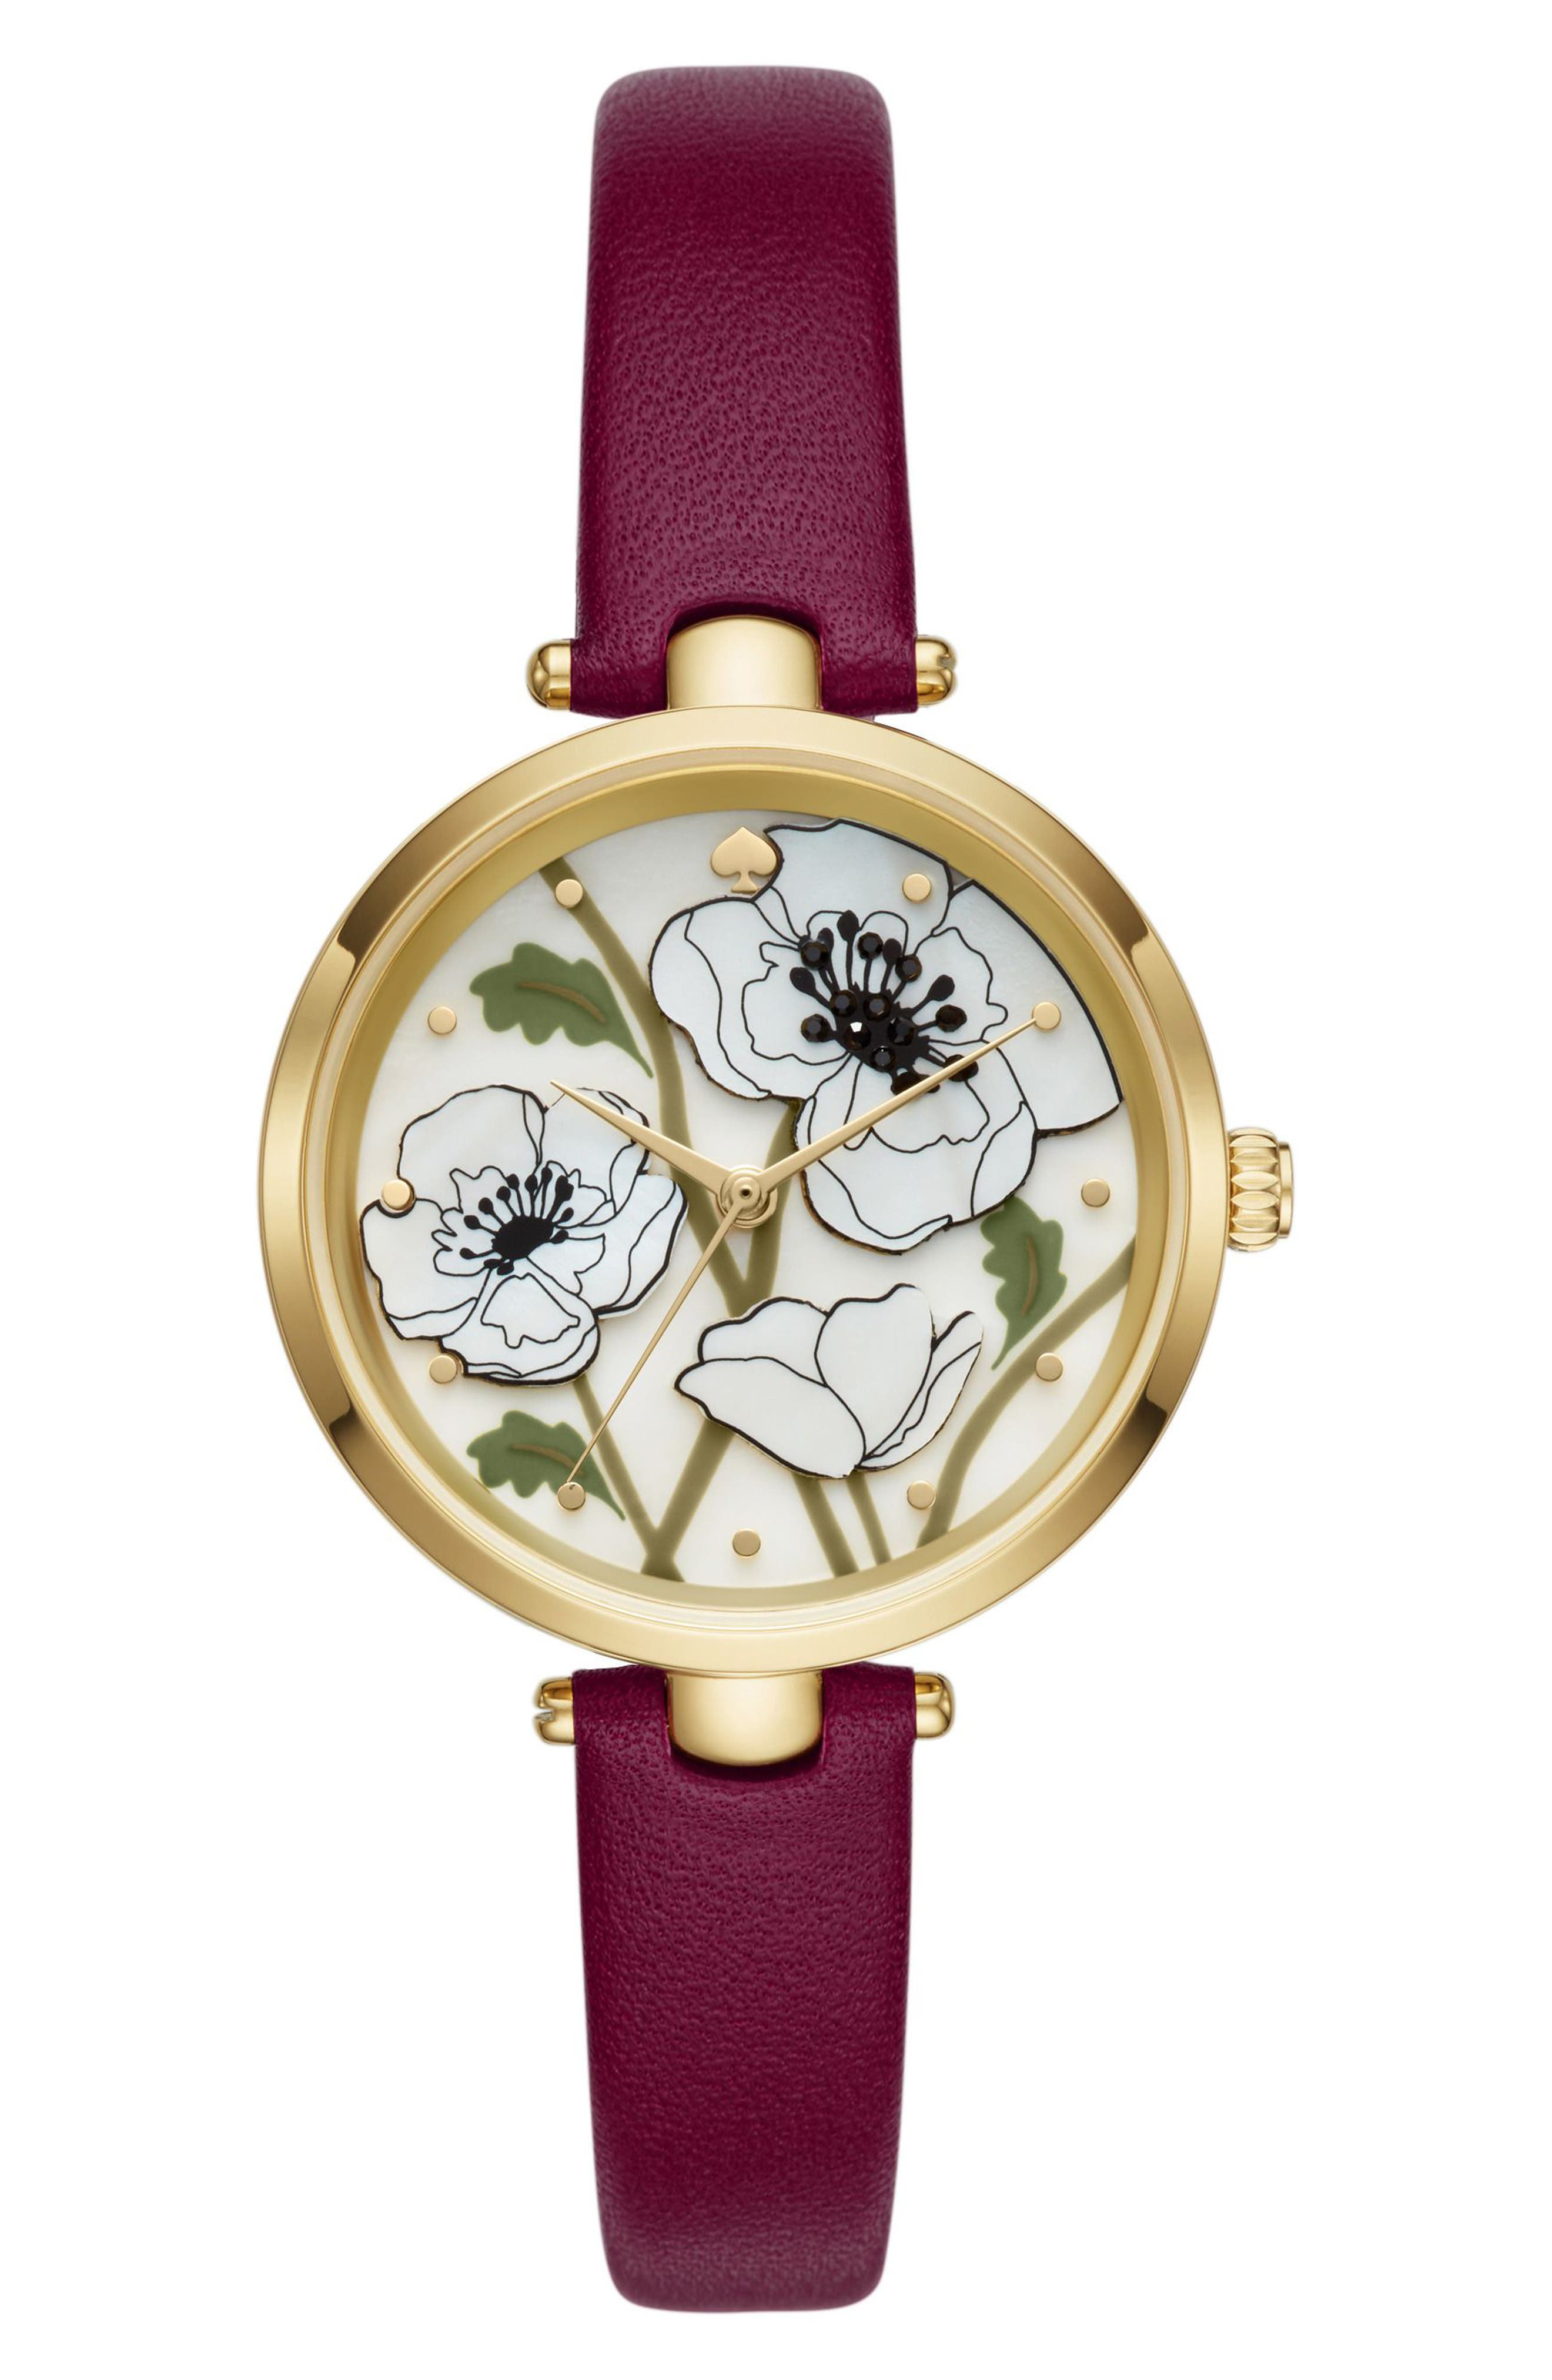 Main Image - kate spade new york holland poppy leather strap watch, 34mm